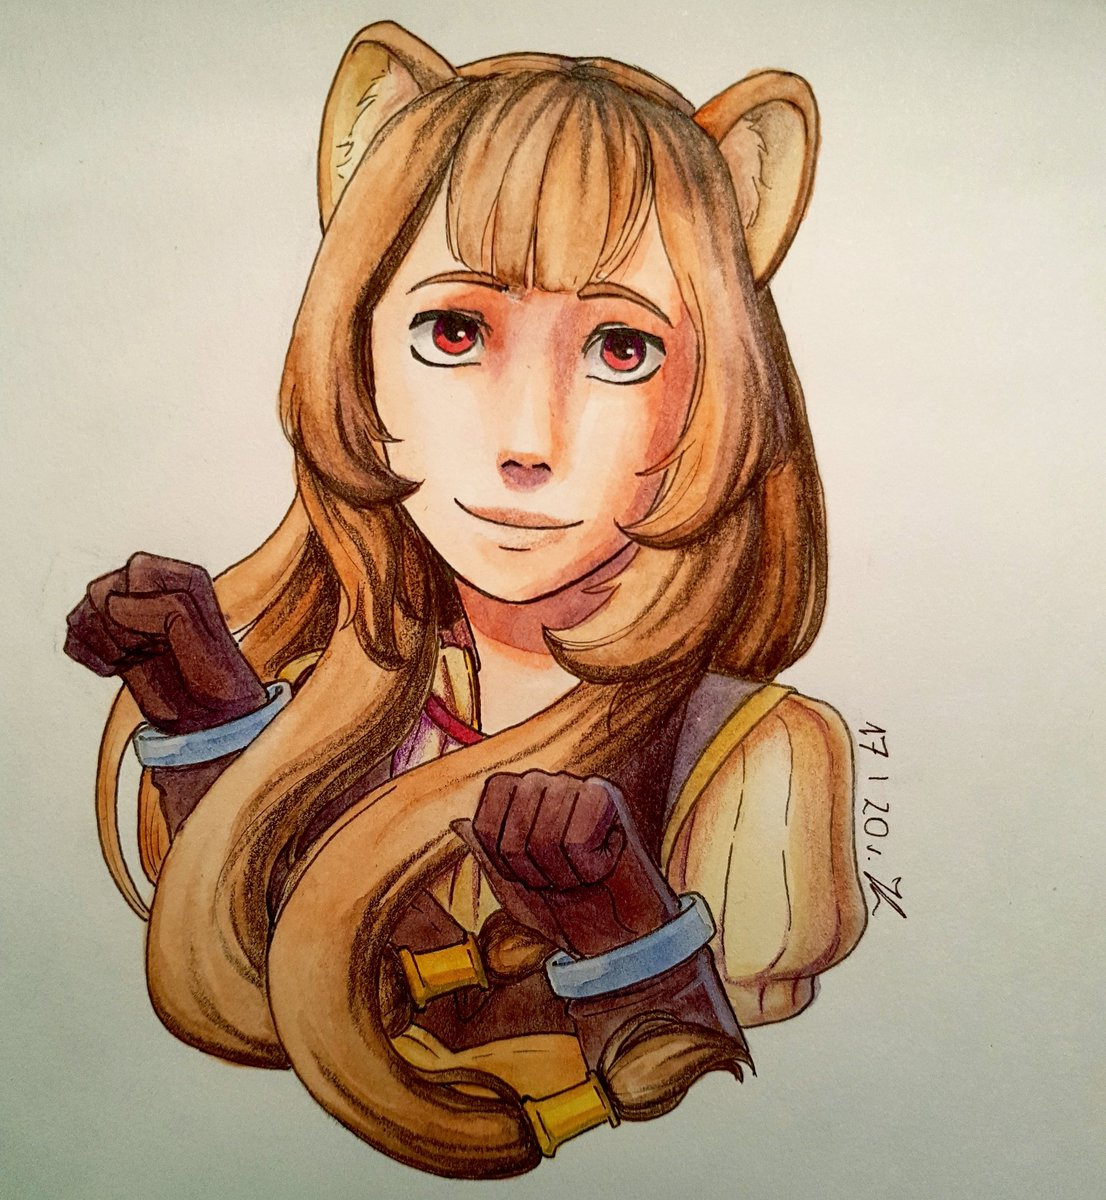 Small fanart of Raphtalia. I really love Tate no Yuusha no Nariagari, I can't wait for season 2 <3  #fanart #animefanart #raphtalia #risingoftheshieldhero #tatenoyuusha #anime #drawing #traditionalart #animegirl #isekai #animeartwork #drawinganime #cute #kawaii #otaku #drawpic.twitter.com/2AYqKuSCjx